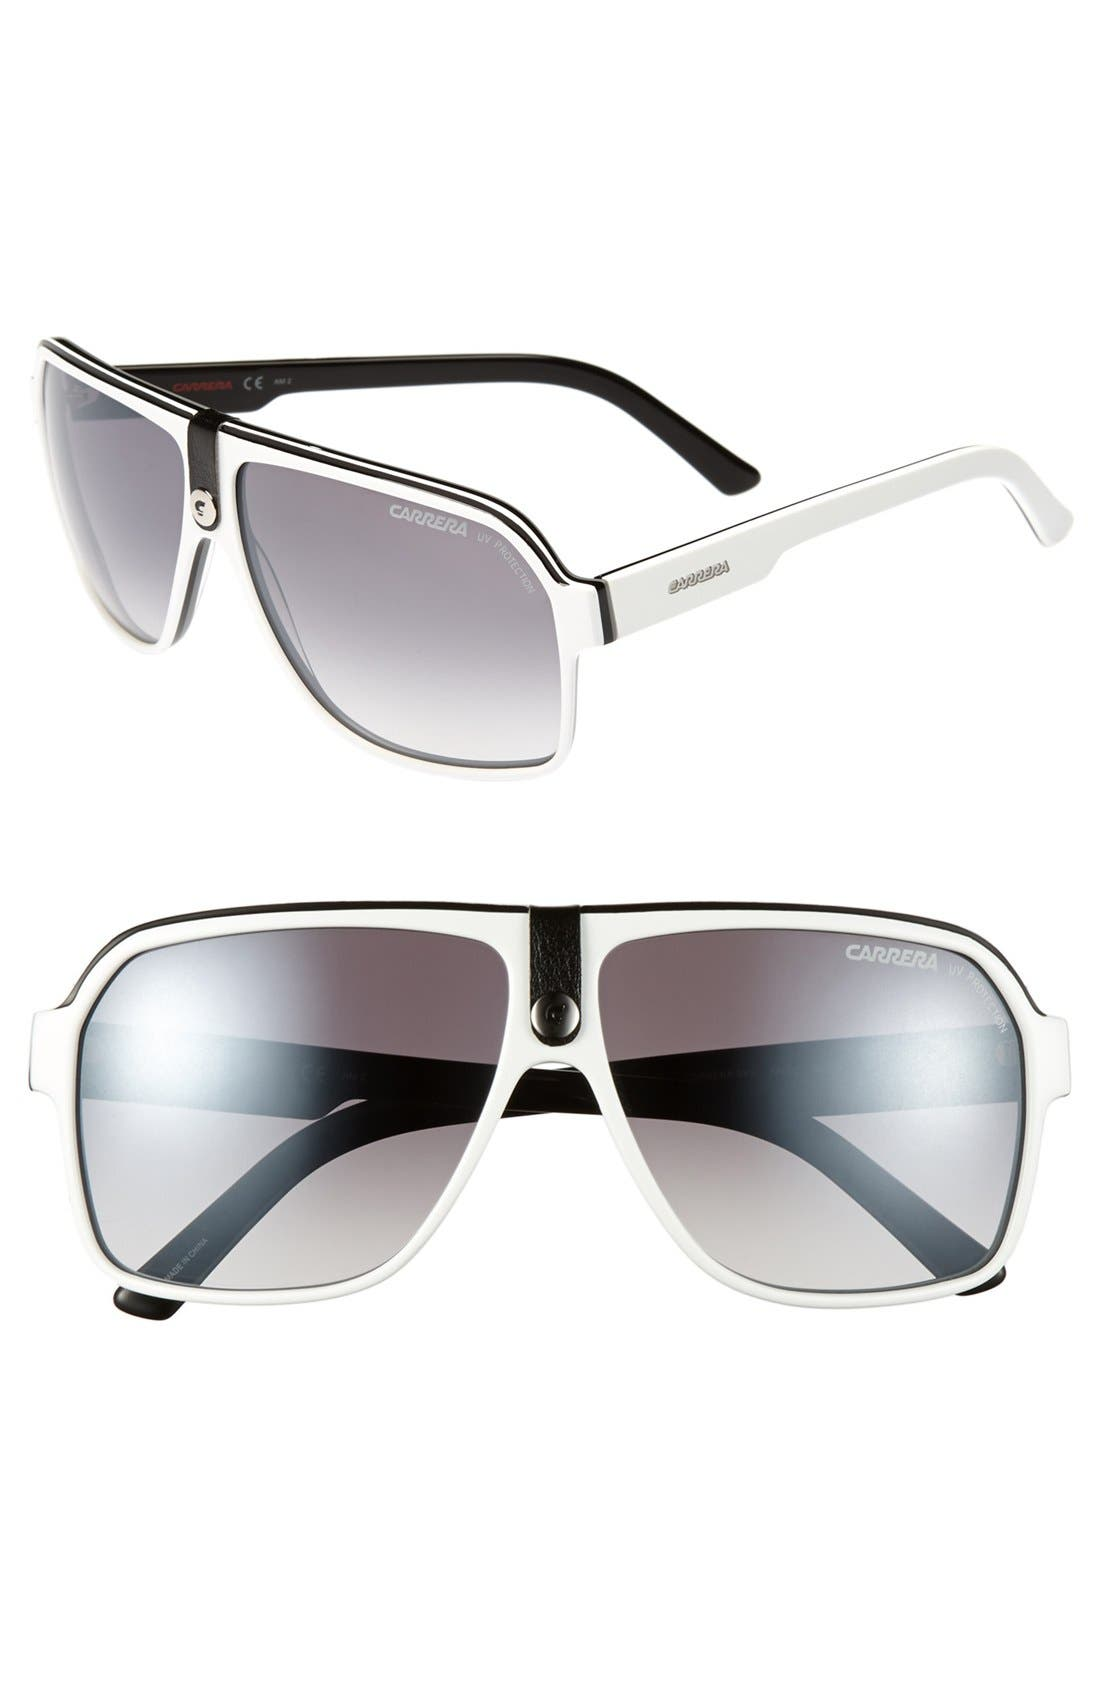 62mm Aviator Sunglasses,                             Main thumbnail 1, color,                             White